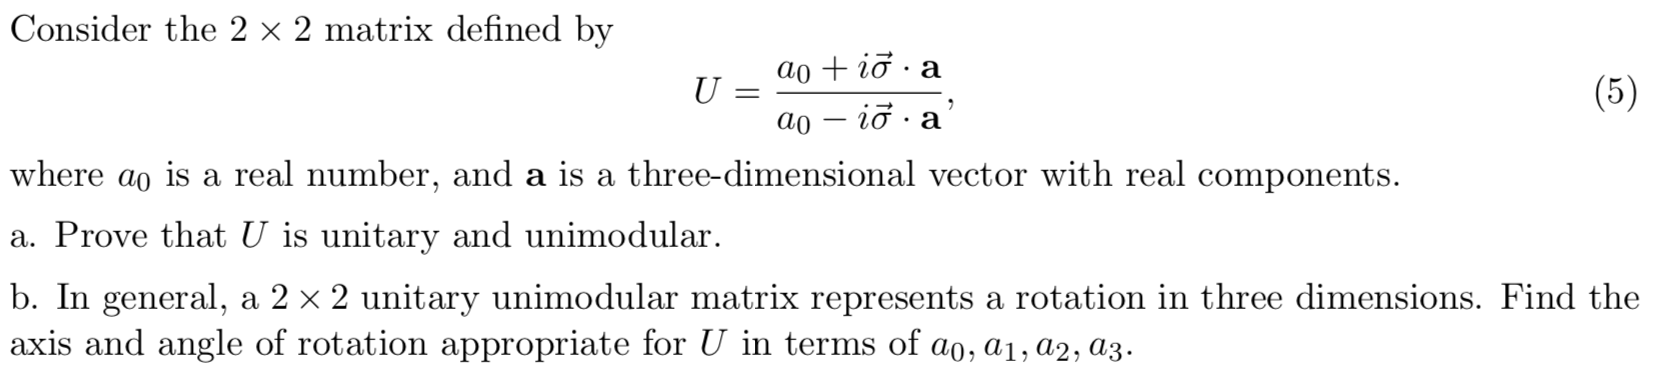 Consider the 2 x 2 matrix defined by aoi a U . (5) ао — iд .a where ao is a real number, and a is a three-dimensional vector with real components. a. Prove that U is unitary and unimodular b. In general, a 2 x 2 unitary unimodular matrix represents a rotation in three dimensions. Find the axis and angle of rotation appropriate for U in terms of ao, ai, a2, a3